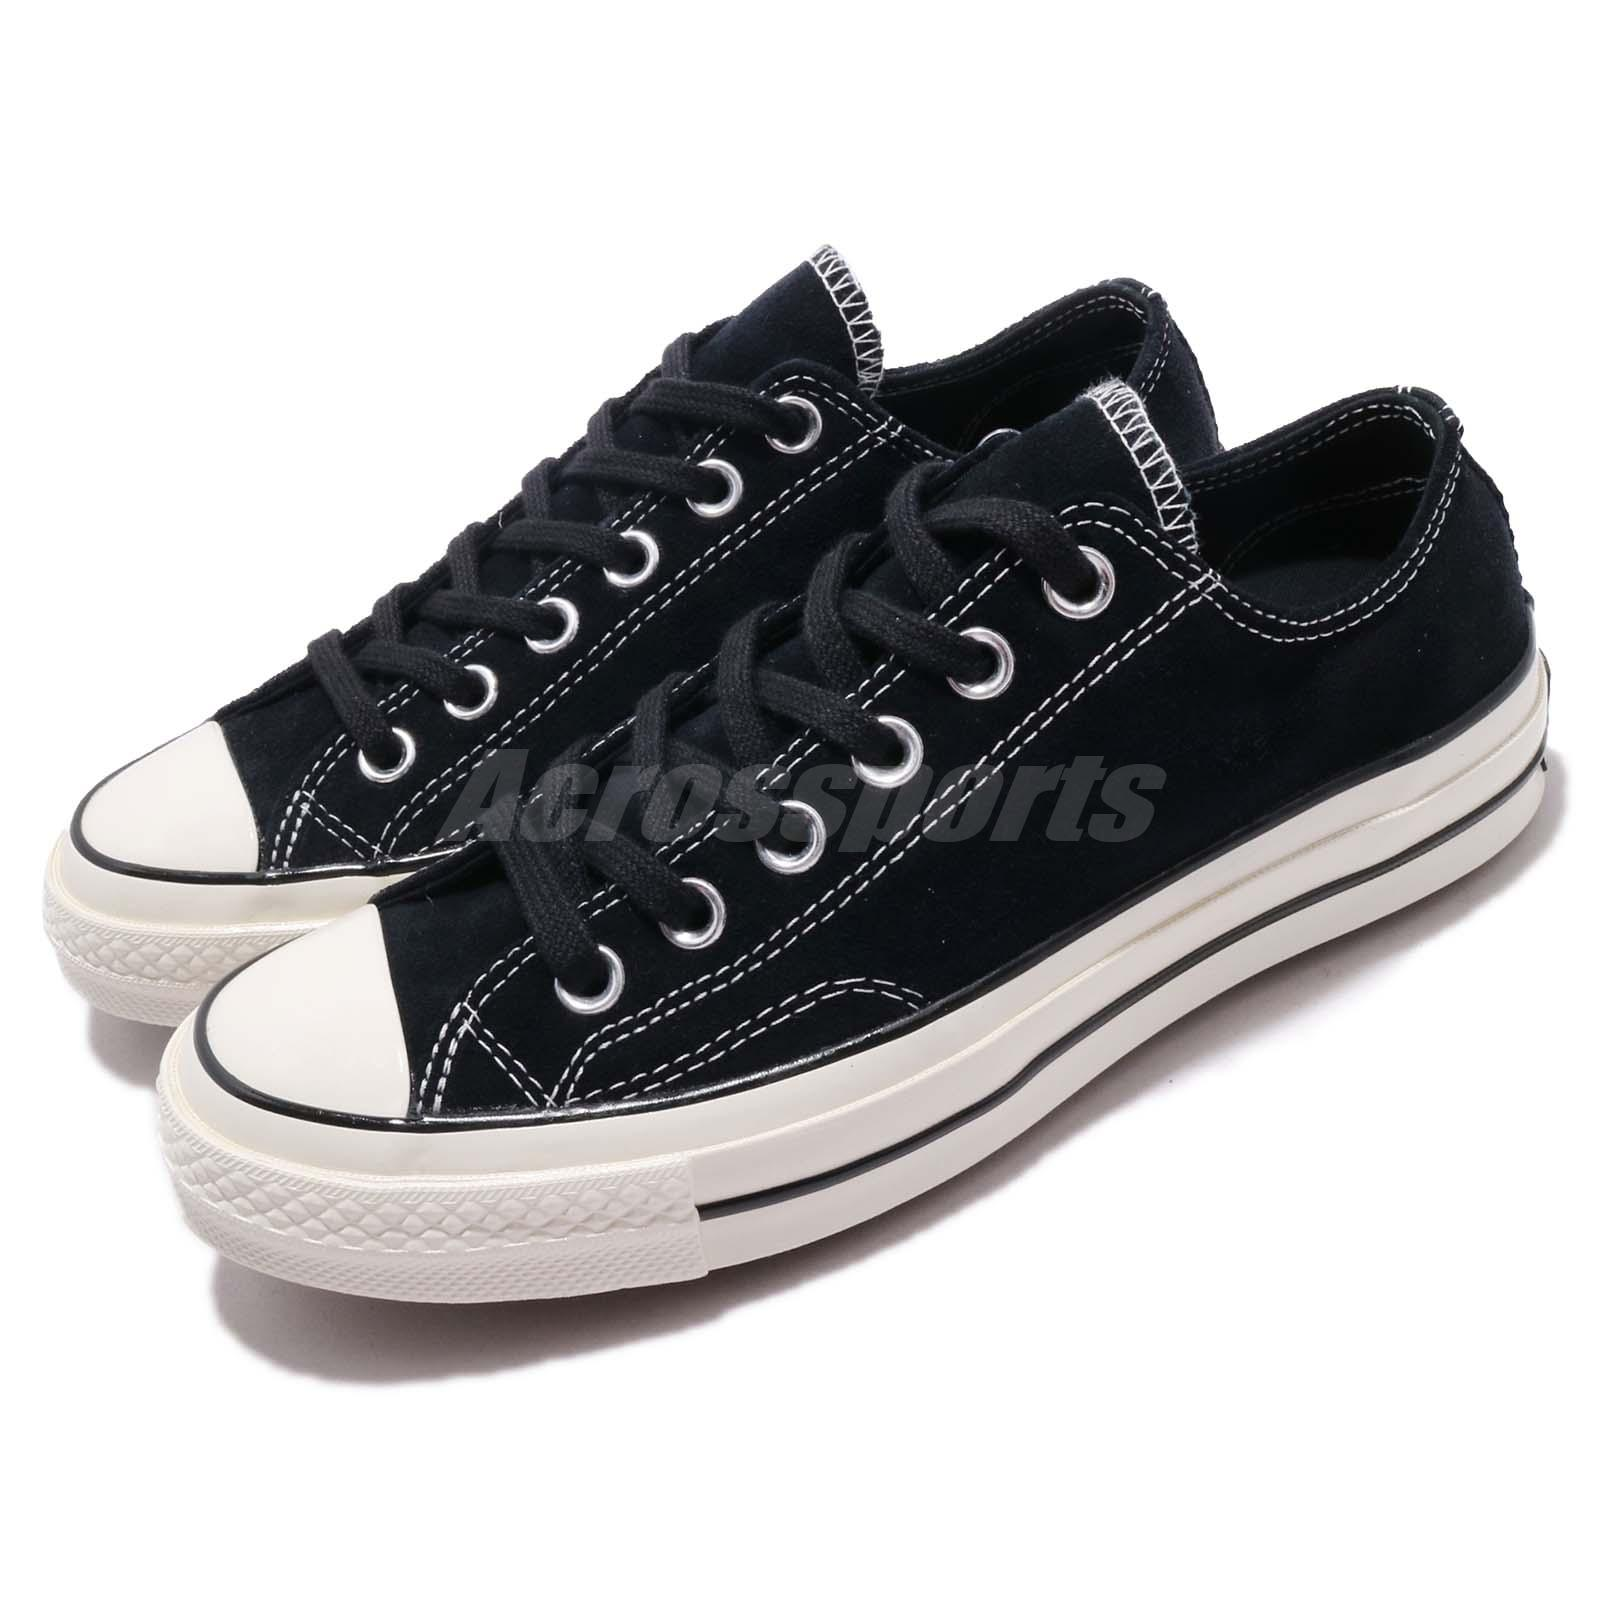 19e7c08f9e36 Details about Converse First String Chuck Taylor All Star 70 OX Black Men  Women Shoes 163759C